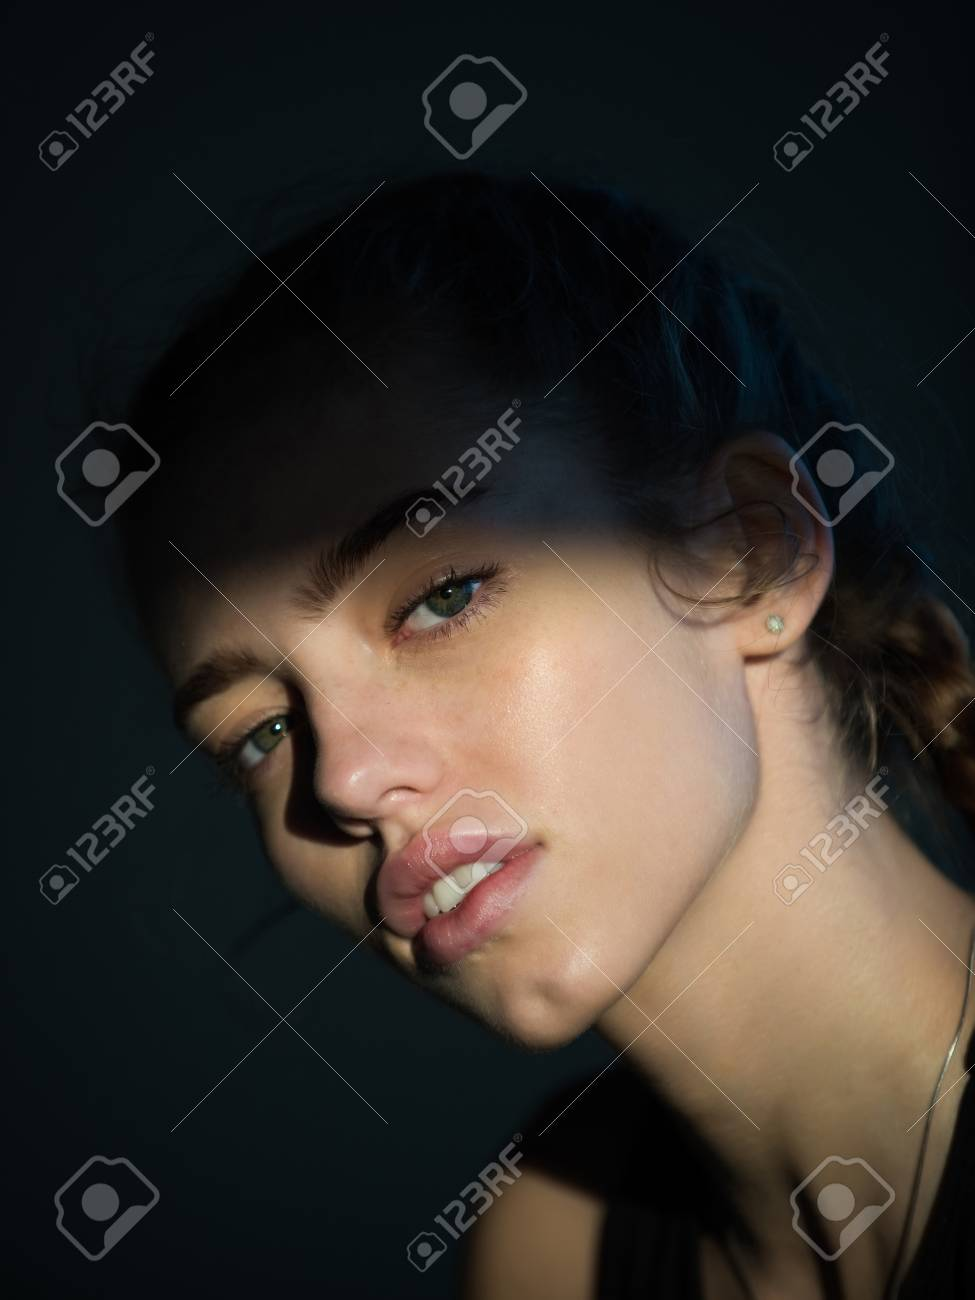 Cute Woman Or Pretty Girl With Adorable Face Green Eyes No Stock